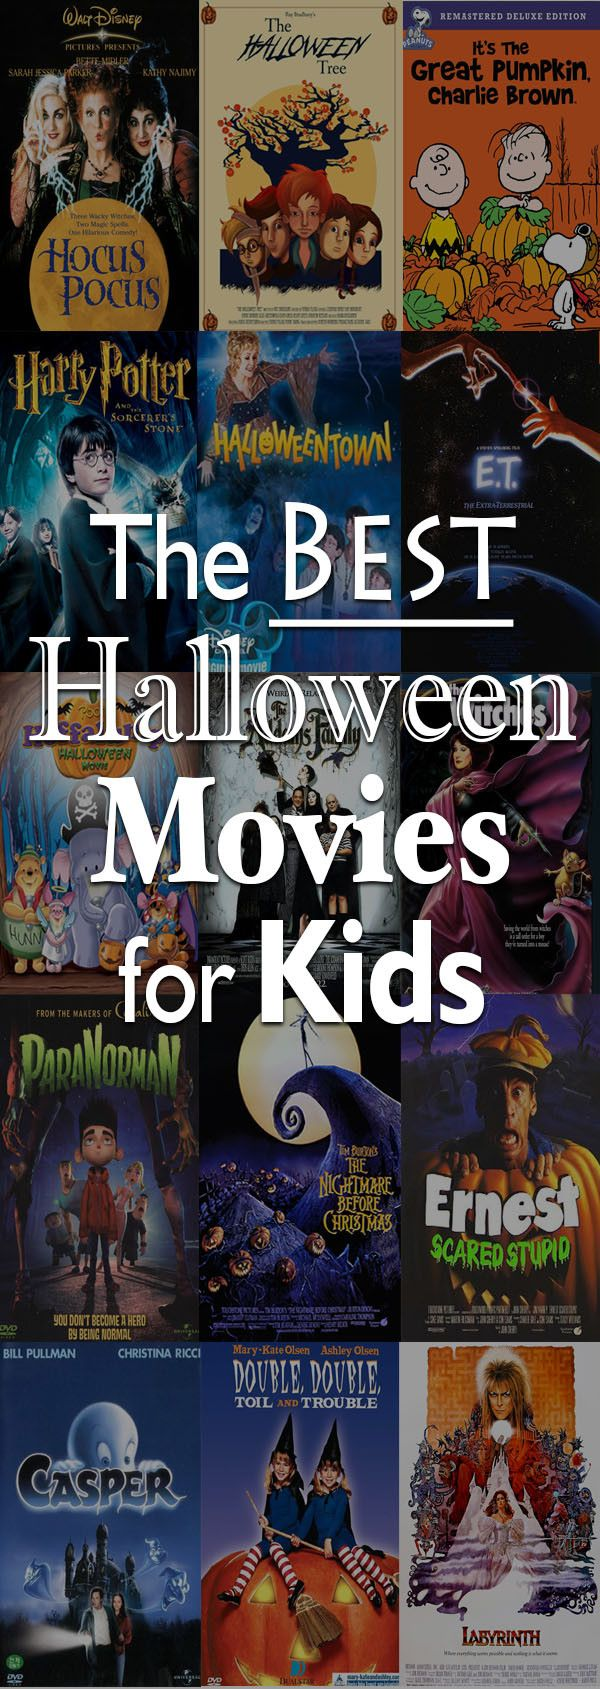 the best halloween movies for kids list of kid friendly movies for fall - Halloween Movies For Young Kids